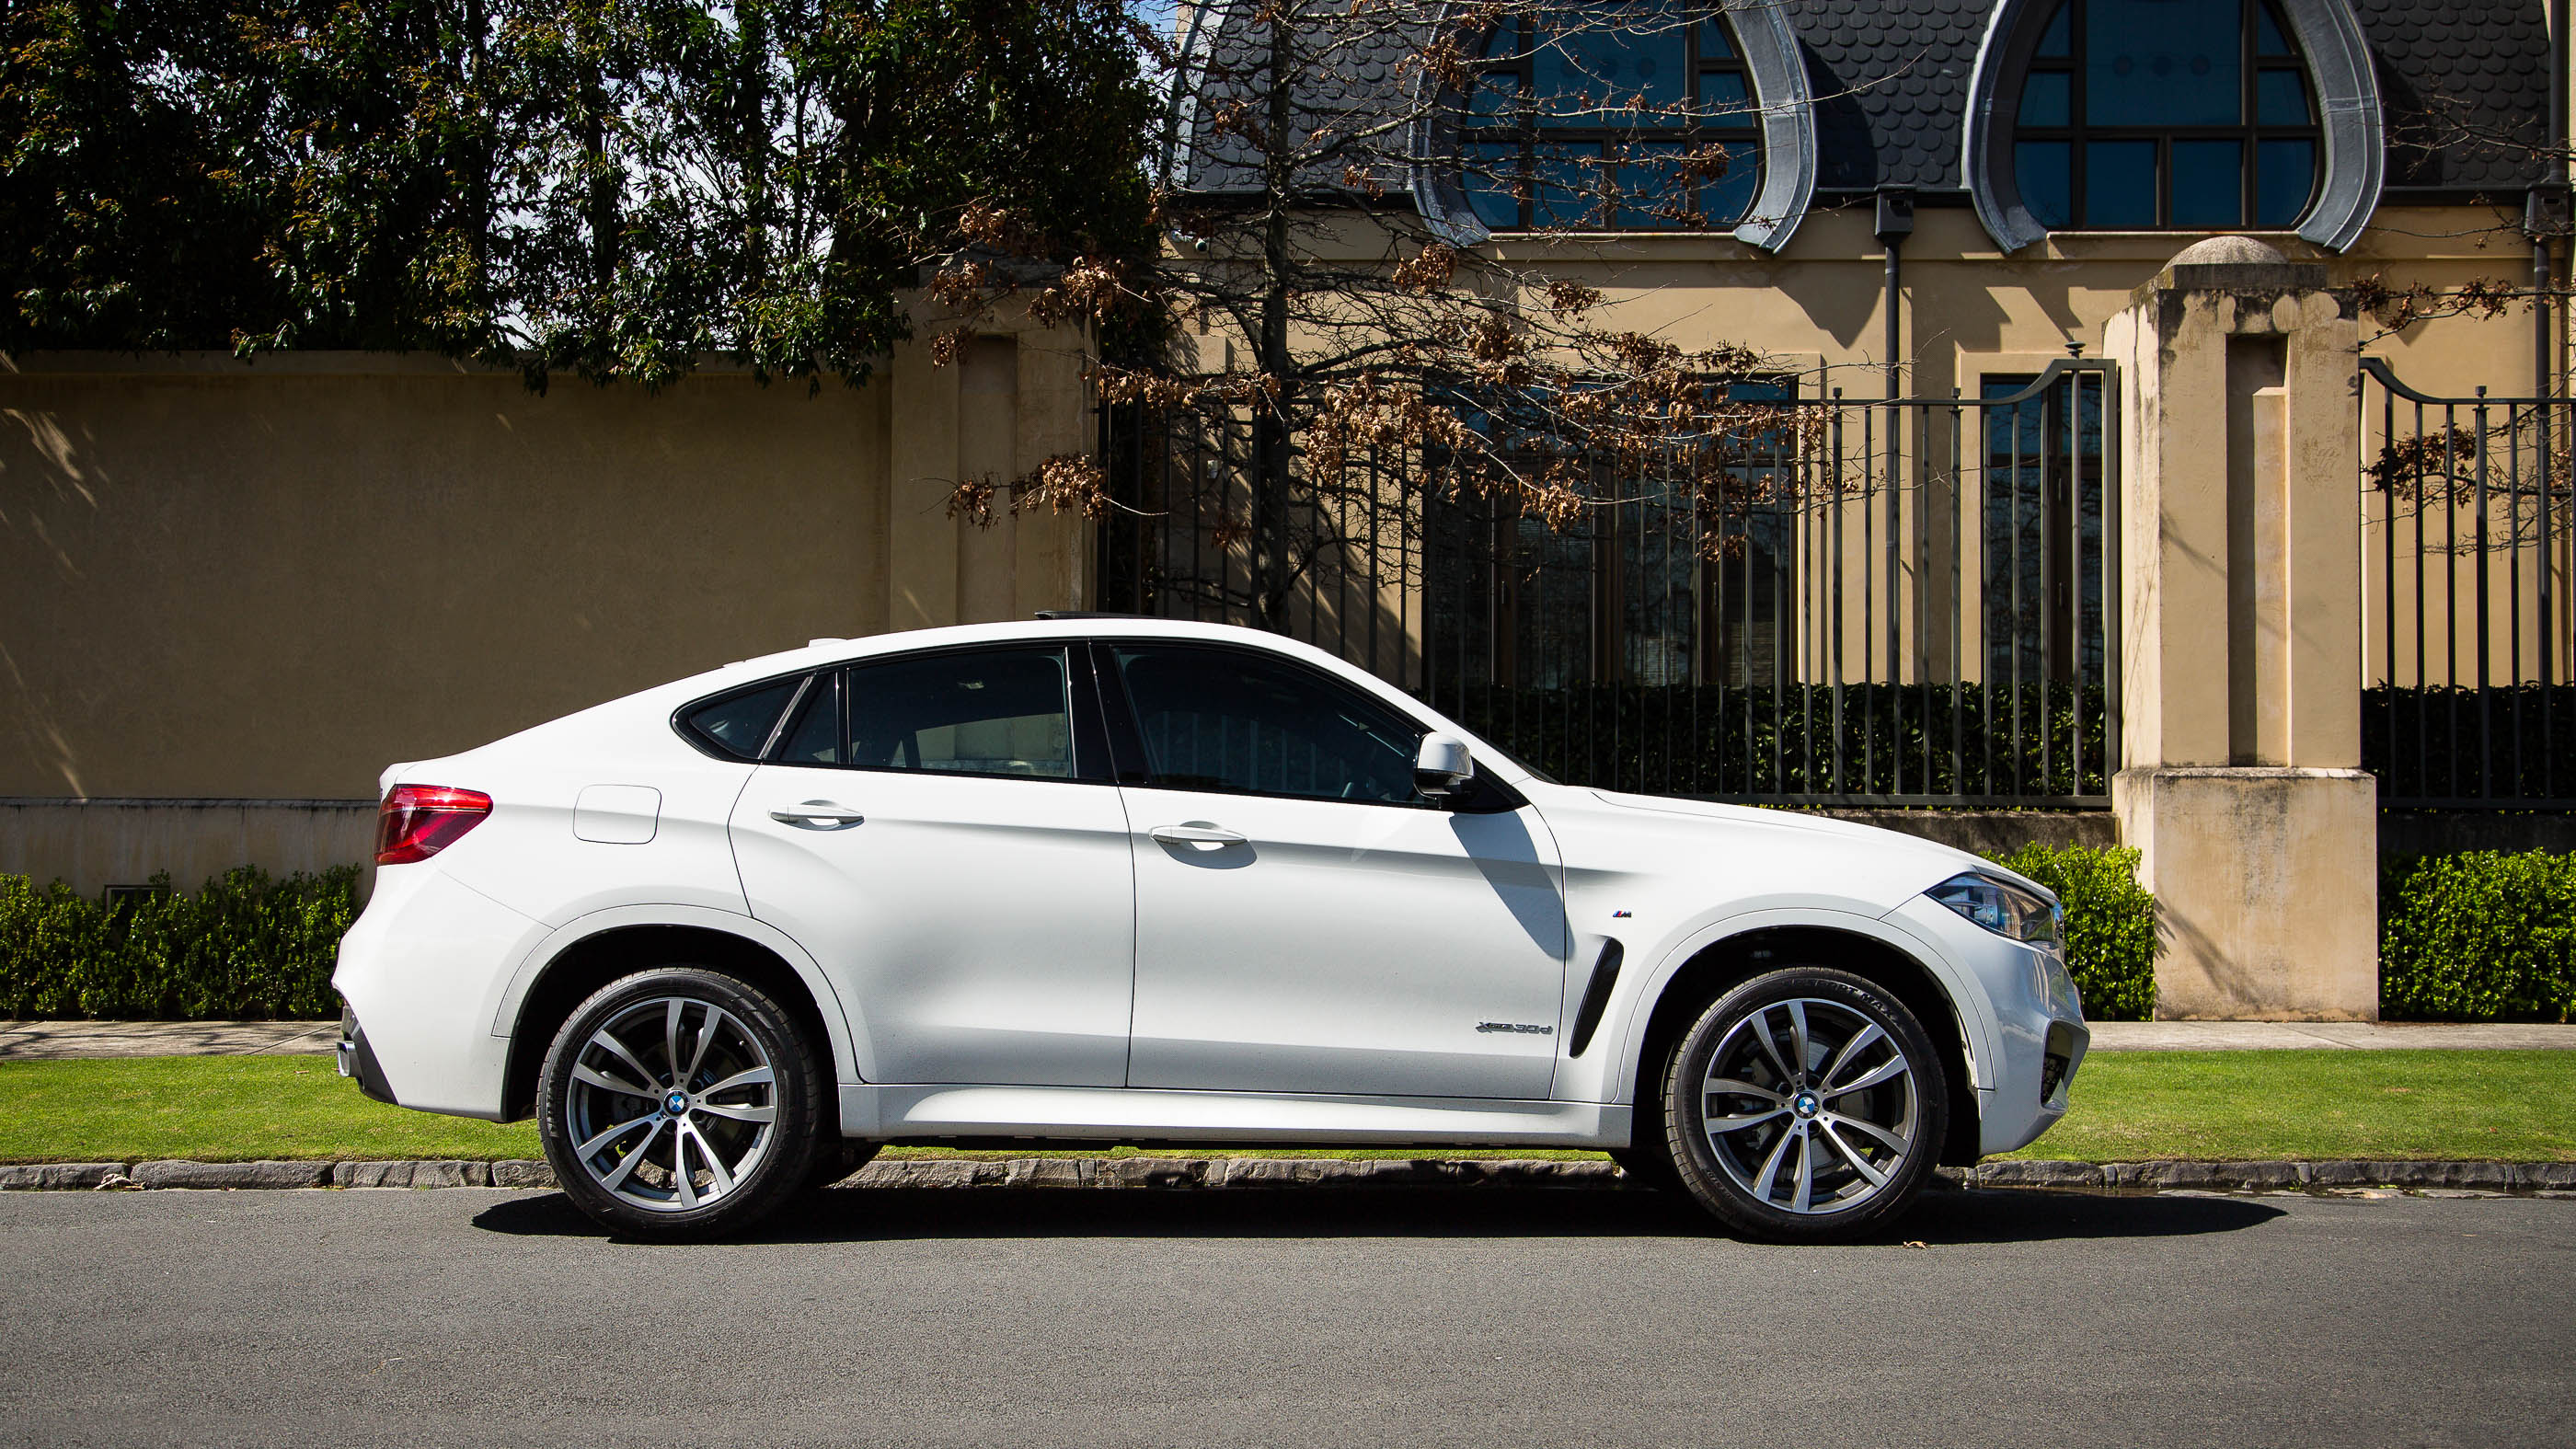 2016 Bmw X6 30d Review Caradvice